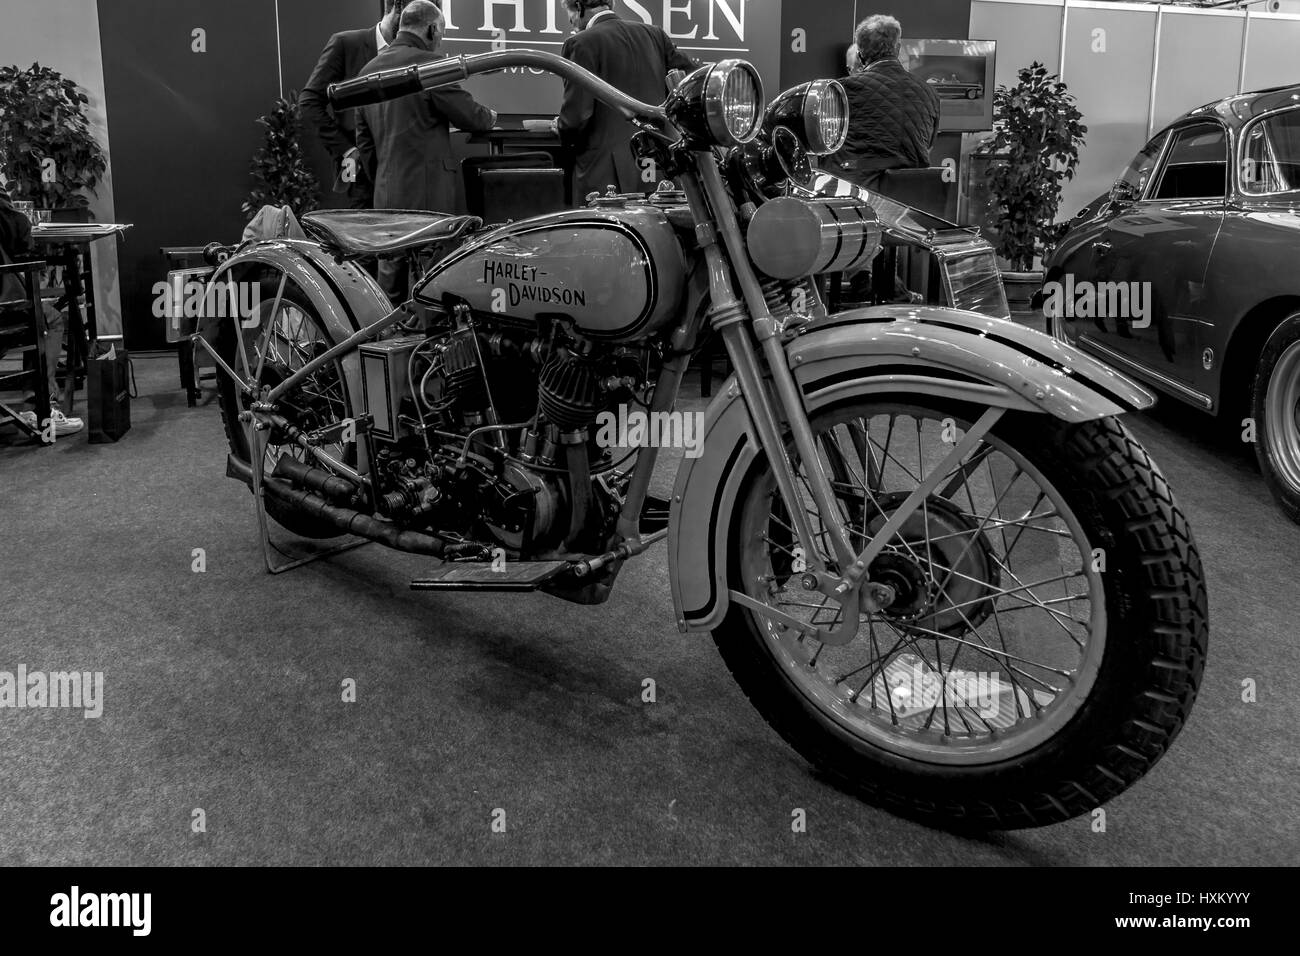 Jd Black and White Stock Photos & Images - Alamy on